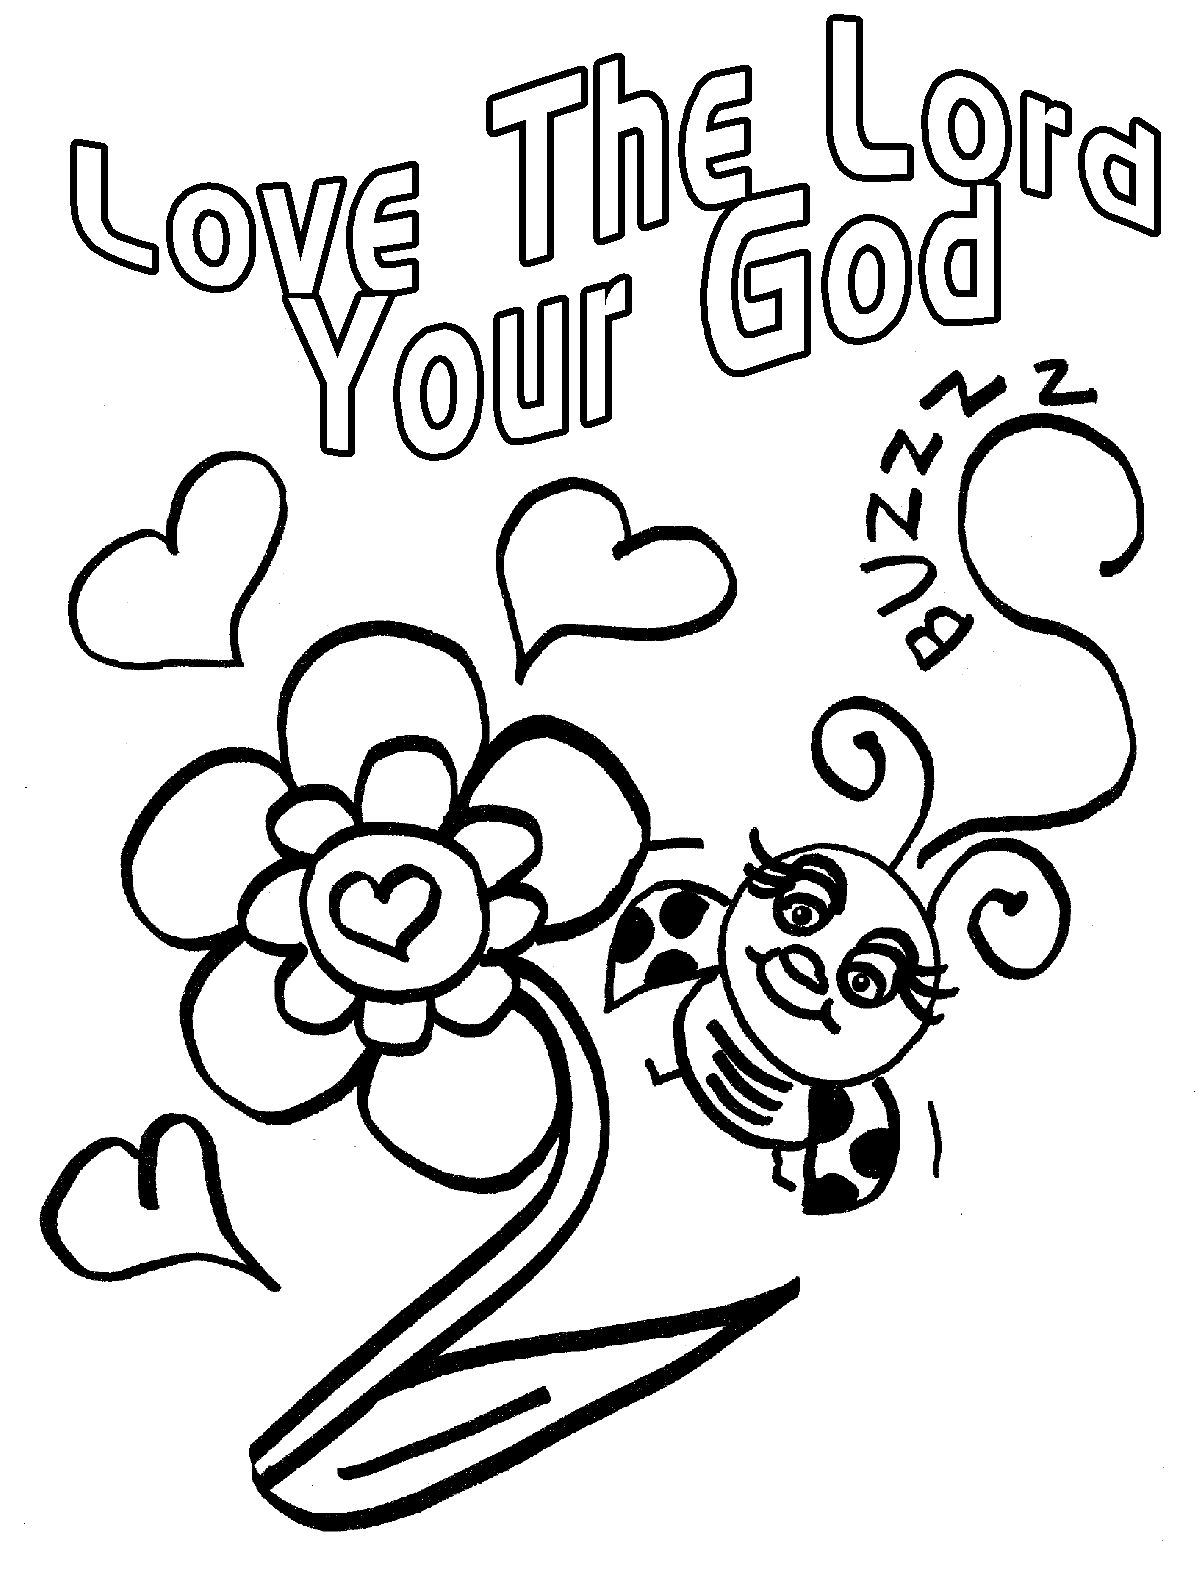 Childrens Gems In My Treasure Box: Love Bug For Jesus Coloring Pages ...